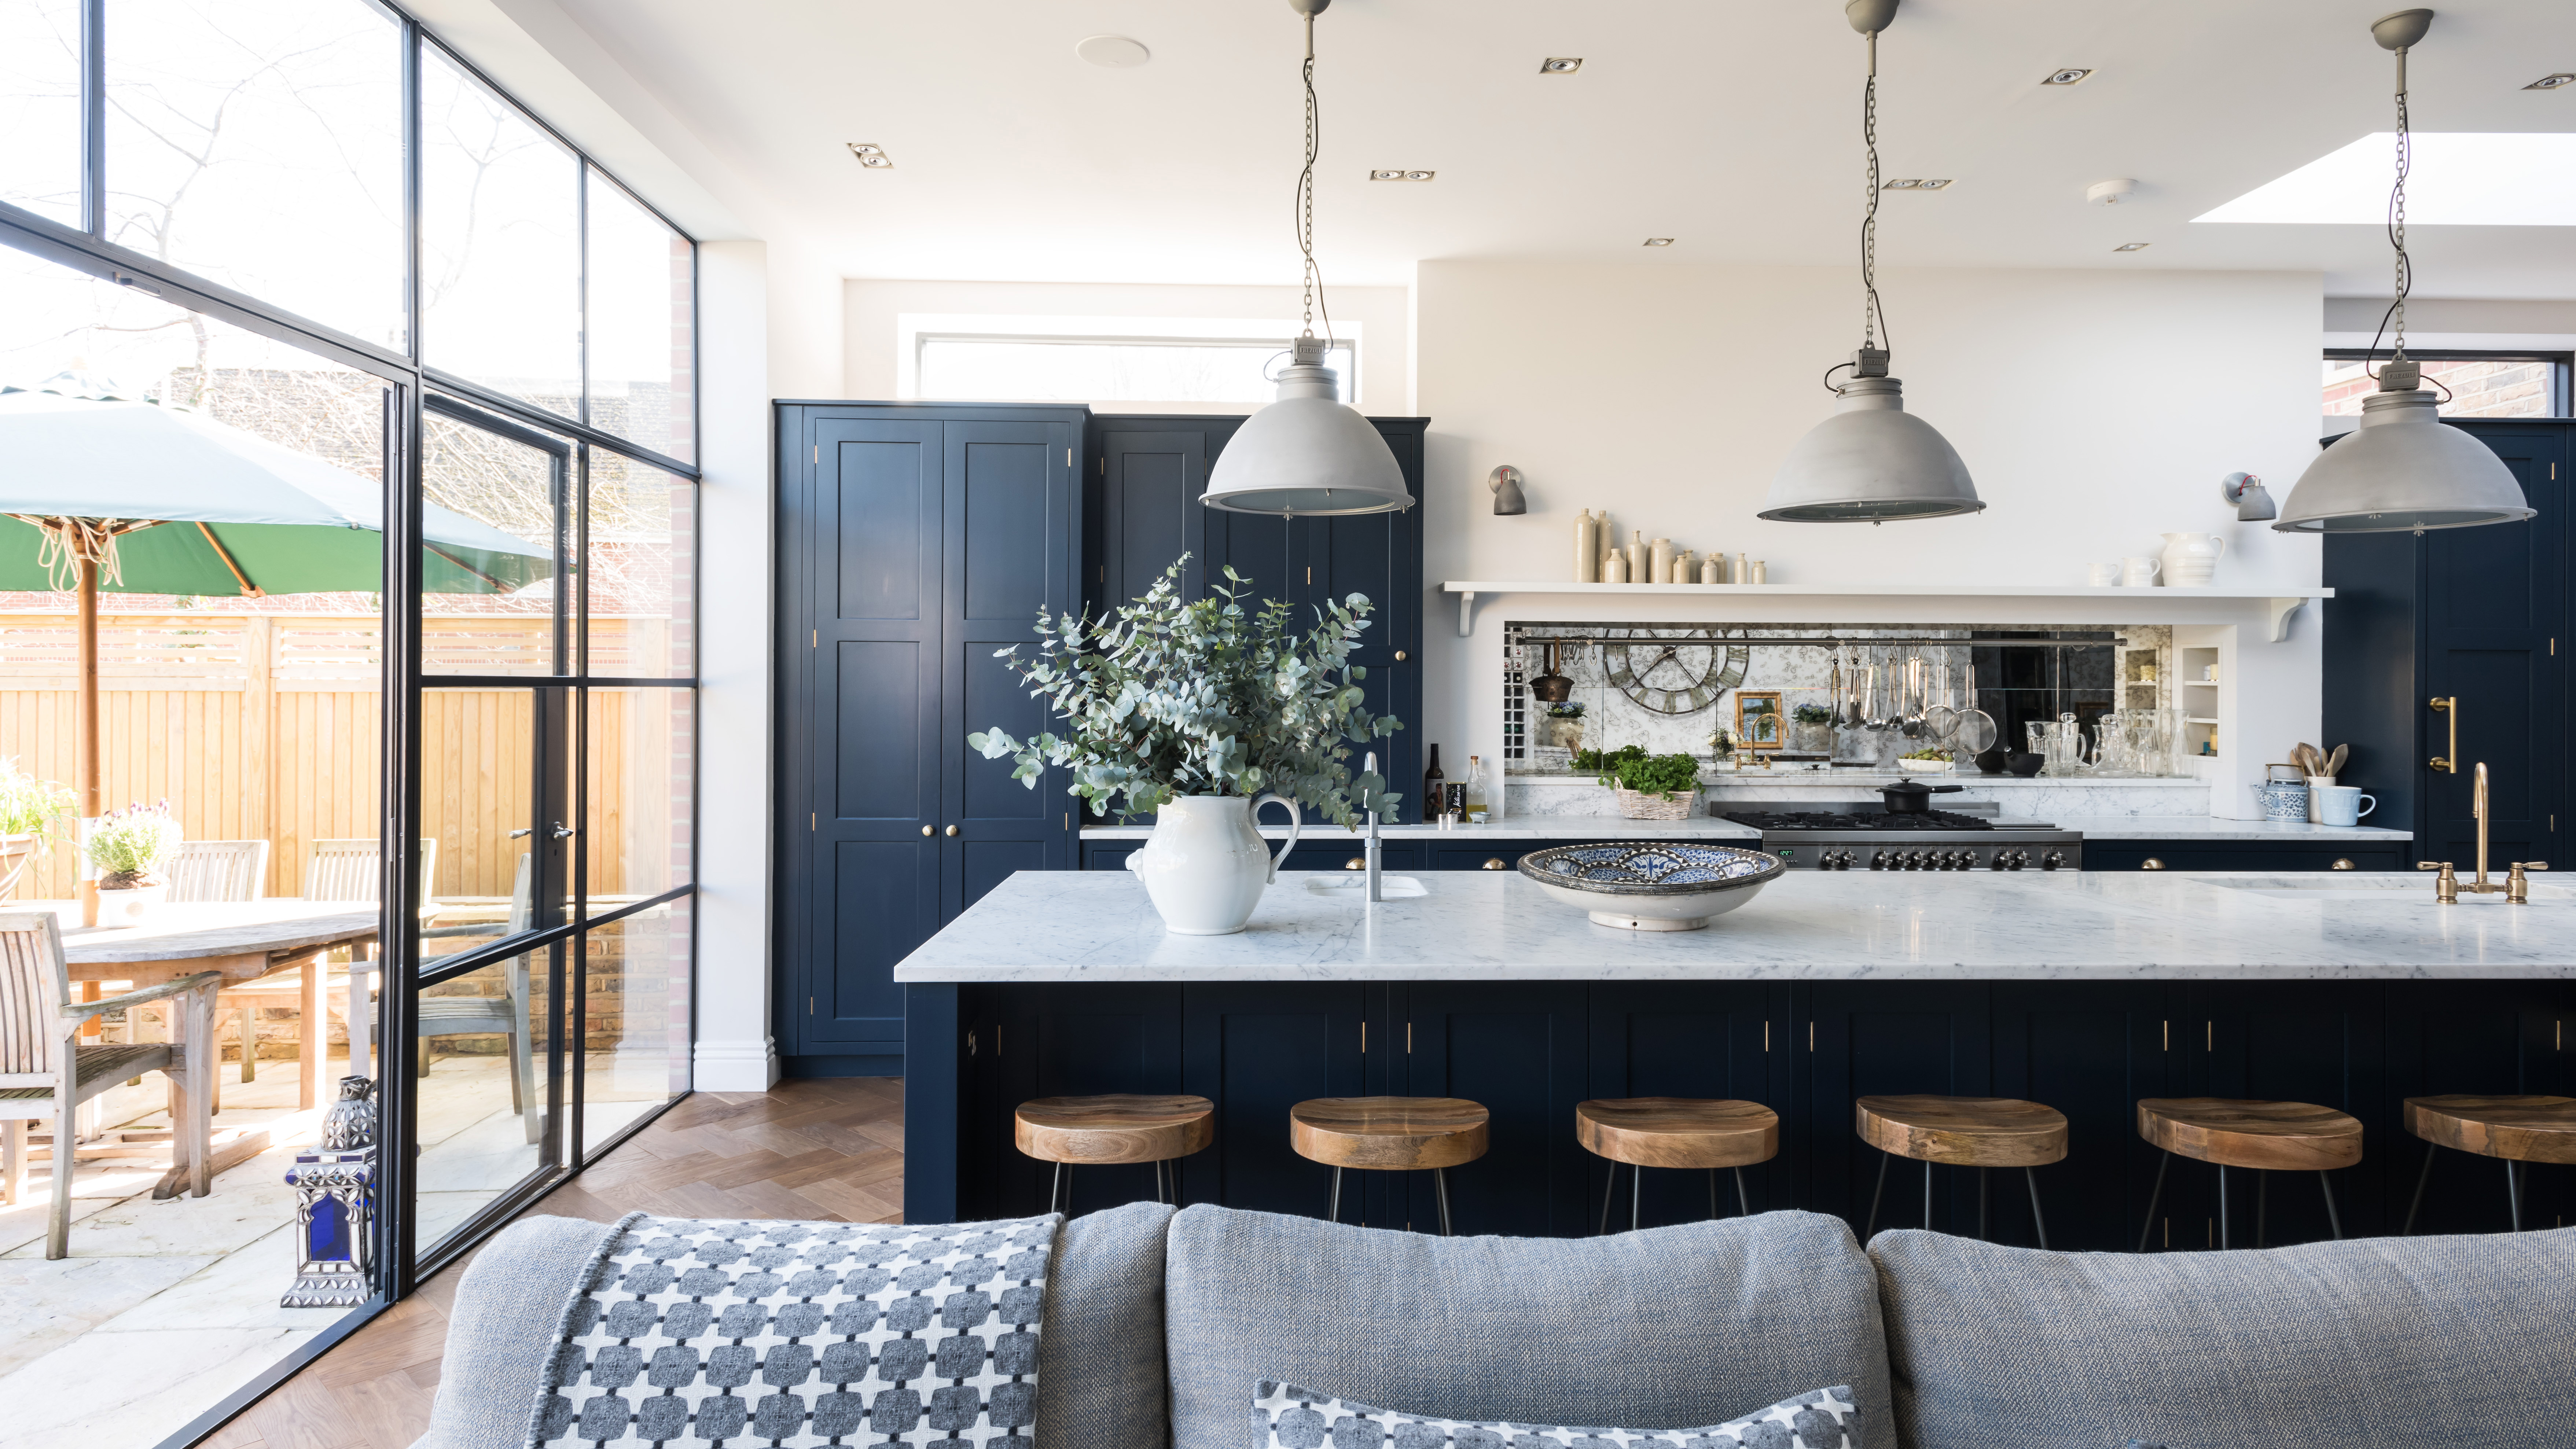 Open plan kitchen ideas 9 clever ways to create a hub for your ...